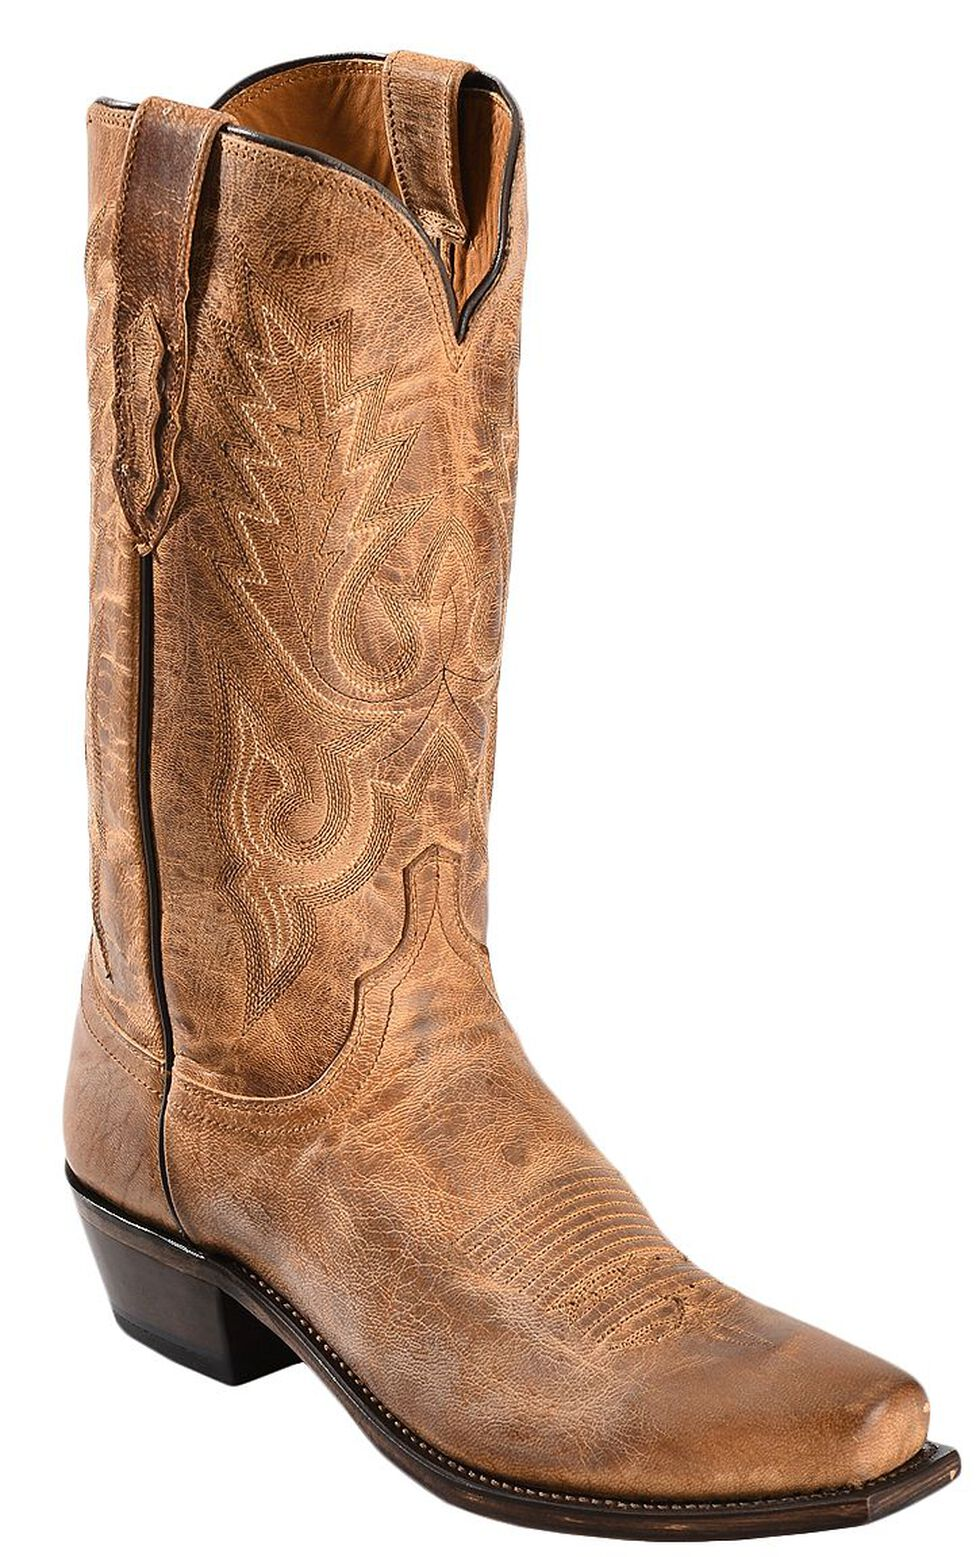 Lucchese Handmade 1883 Mad Dog Goatskin Cowboy Boots - SnipToe, Tan, hi-res